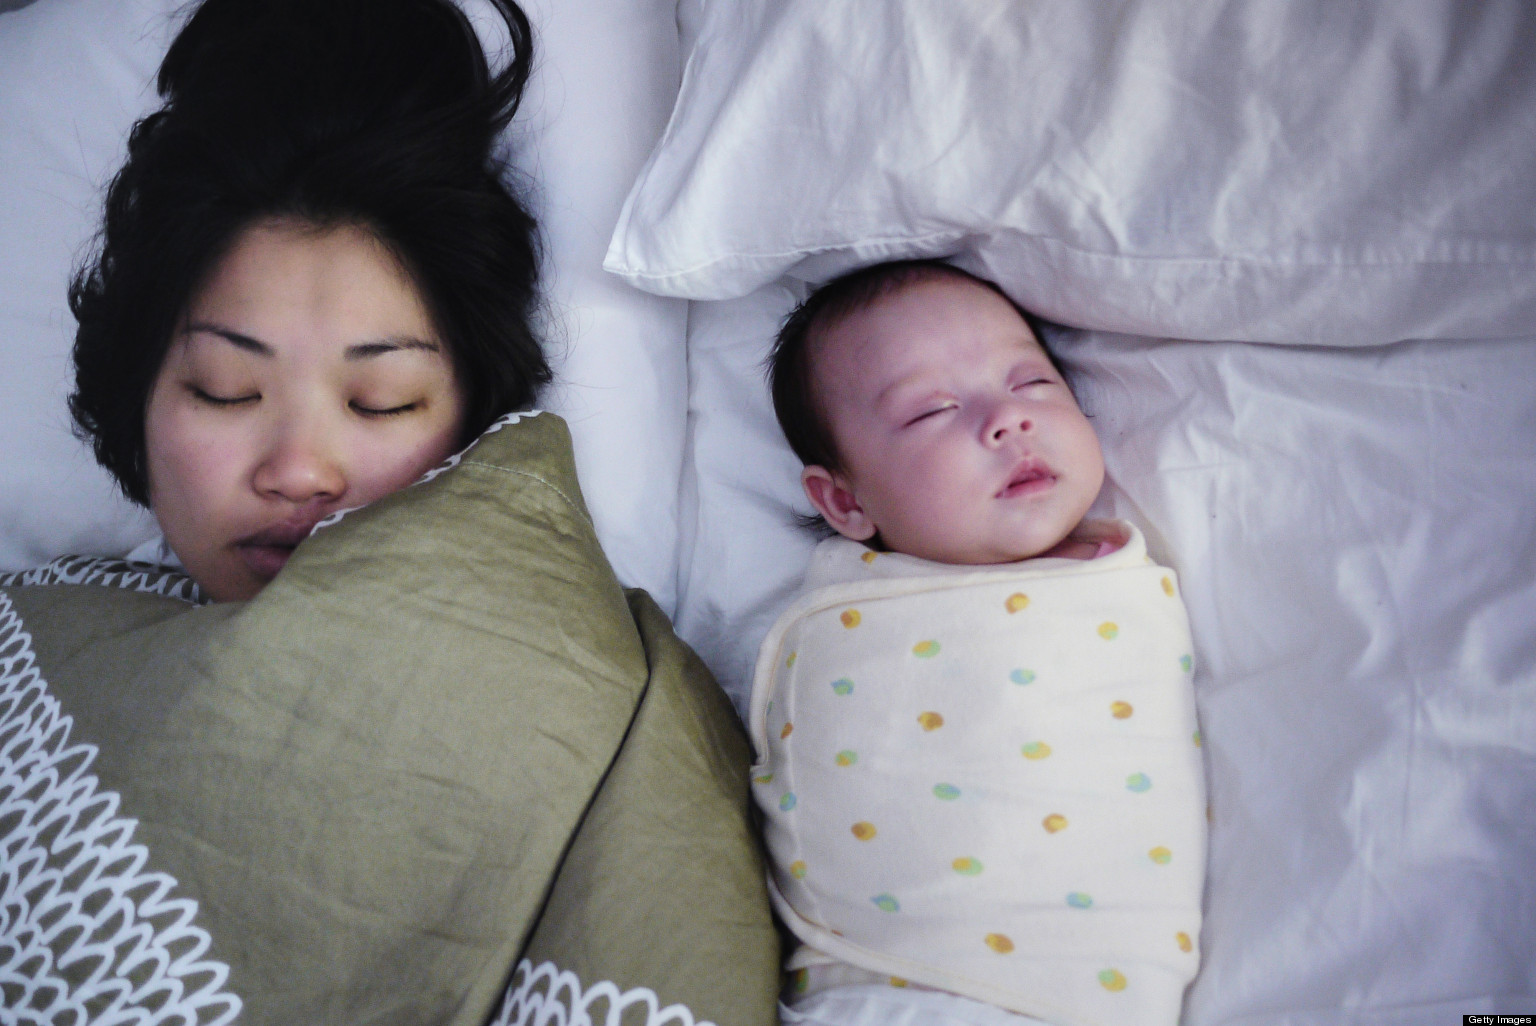 Co-Sleeping And SIDS: Risk Is Increased When Infants Sleep ...